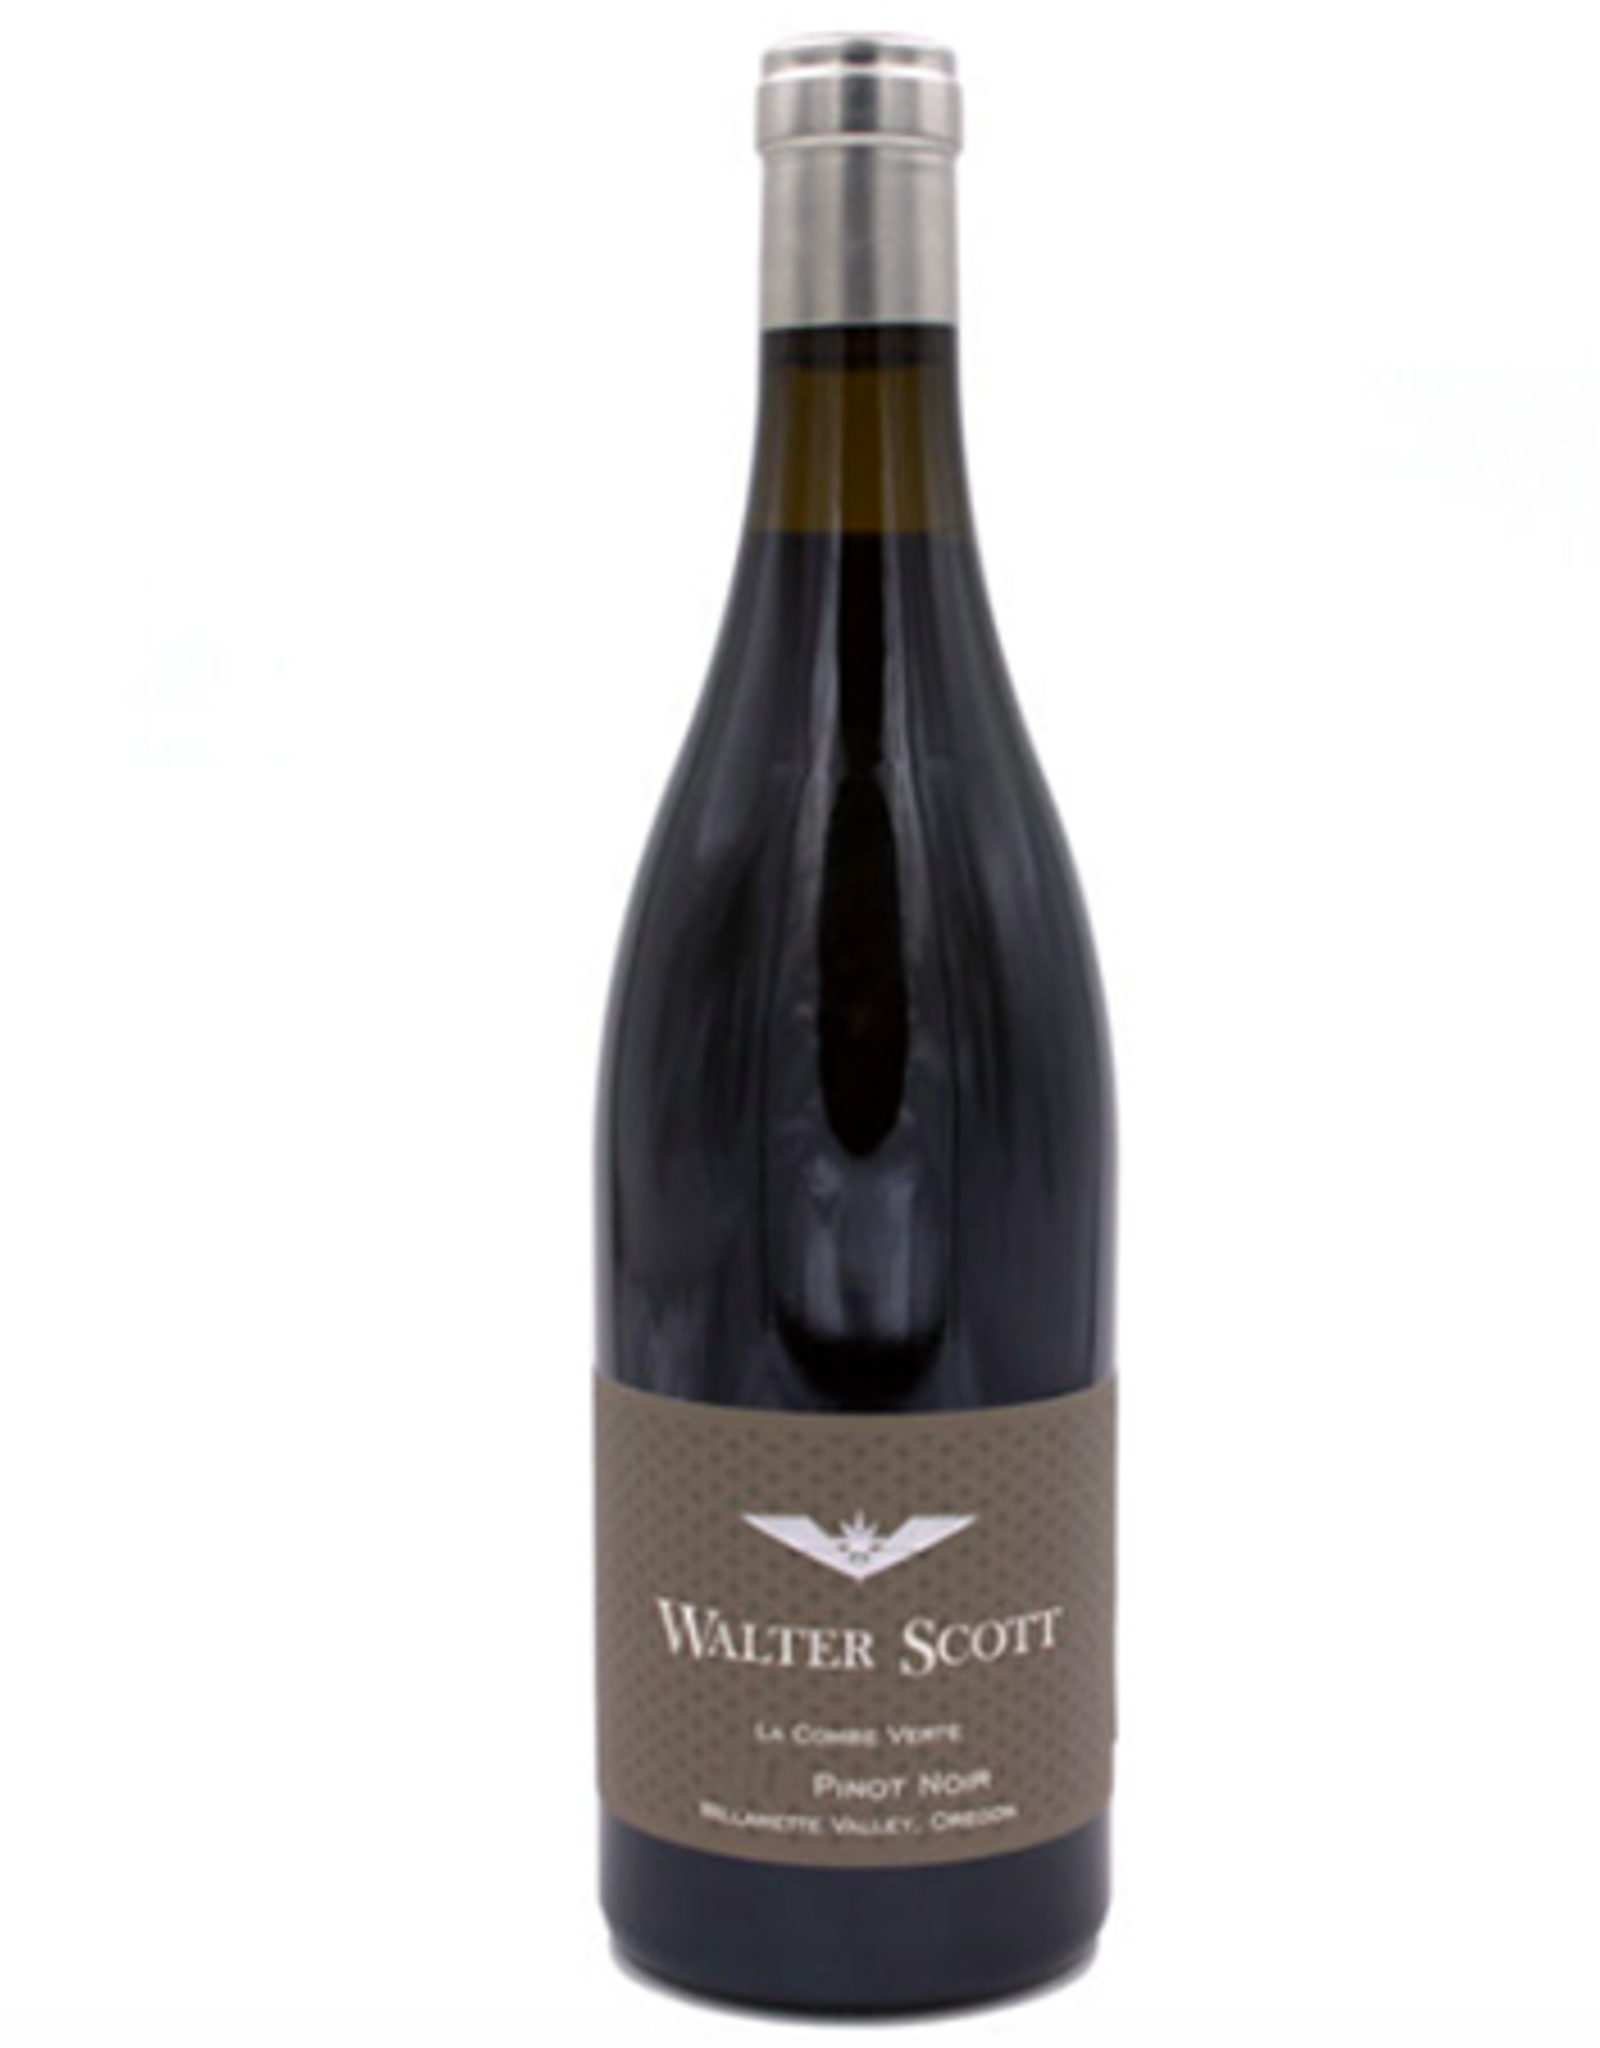 Walter Scott Pinot Noir La Combe Verte Willamette Valley 2018